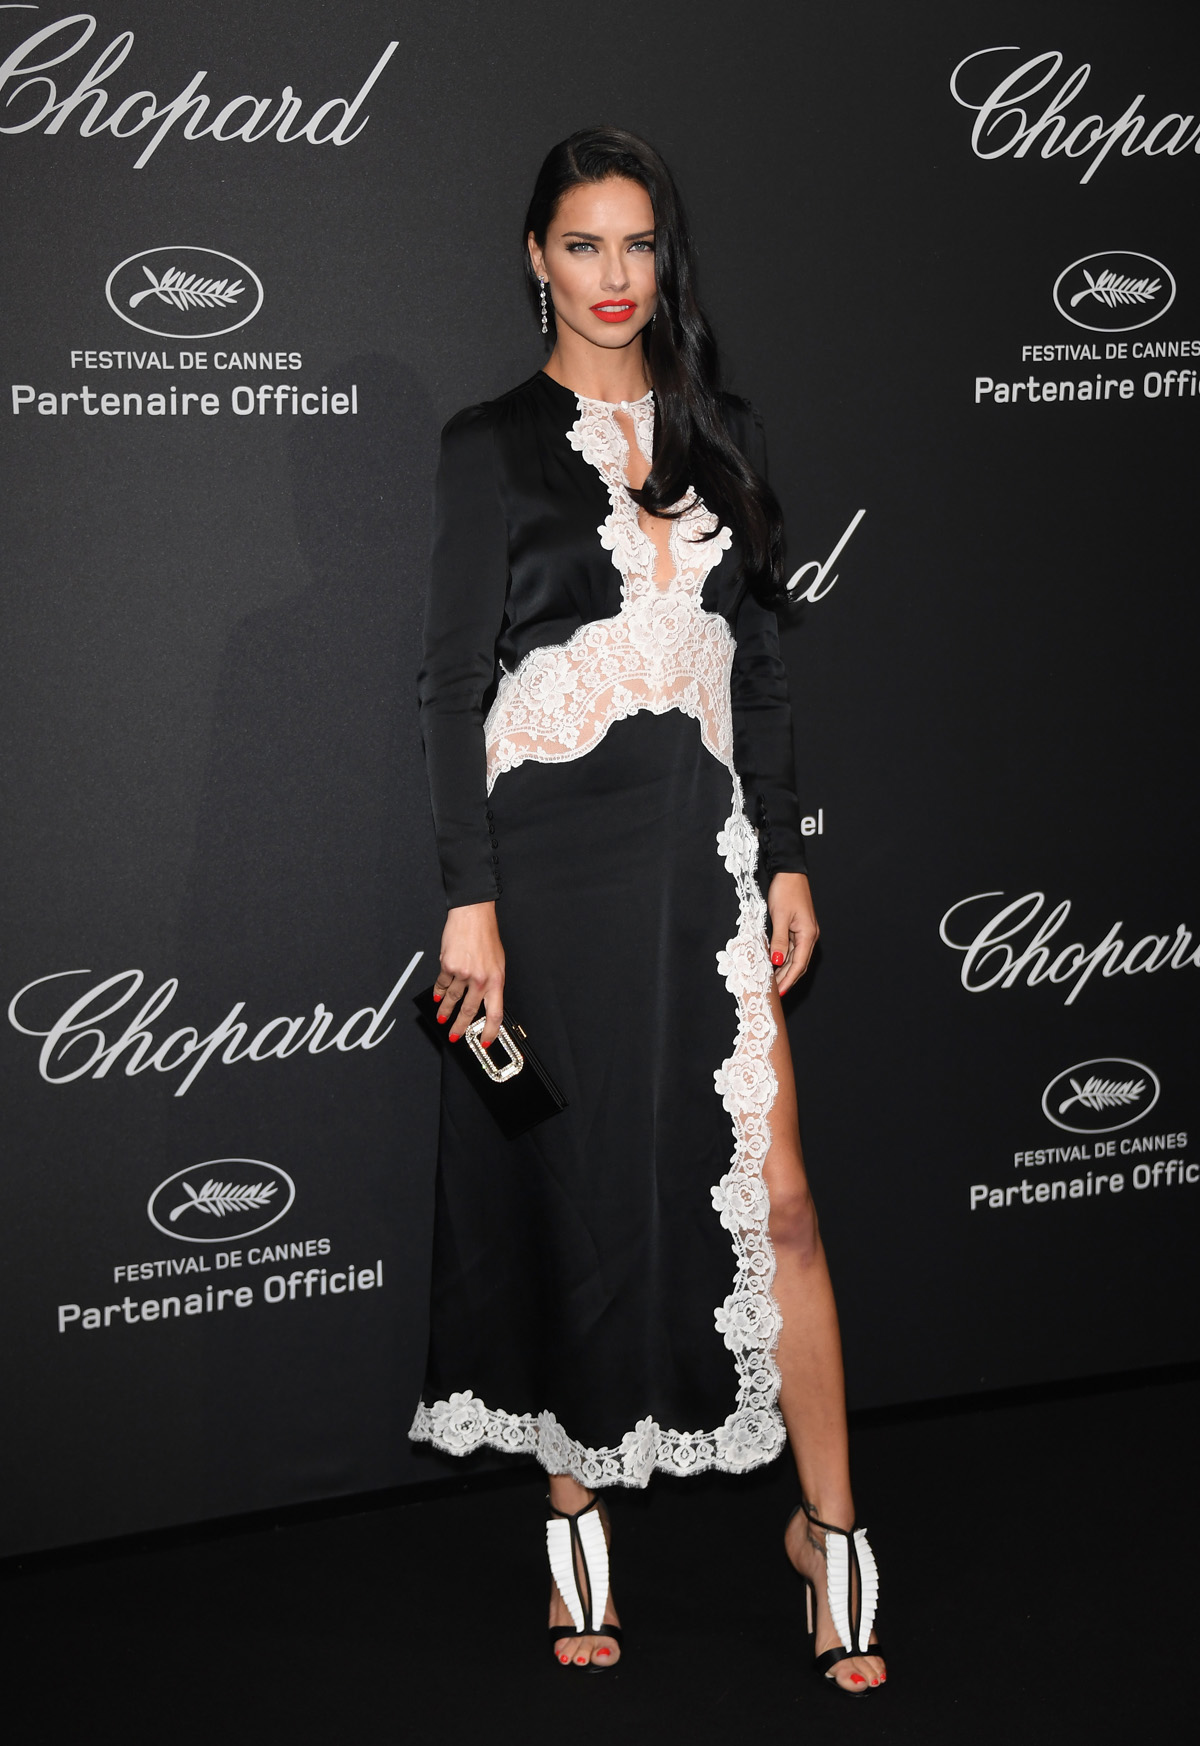 Chopard Wild Party - The 69th Annual Cannes Film Festival